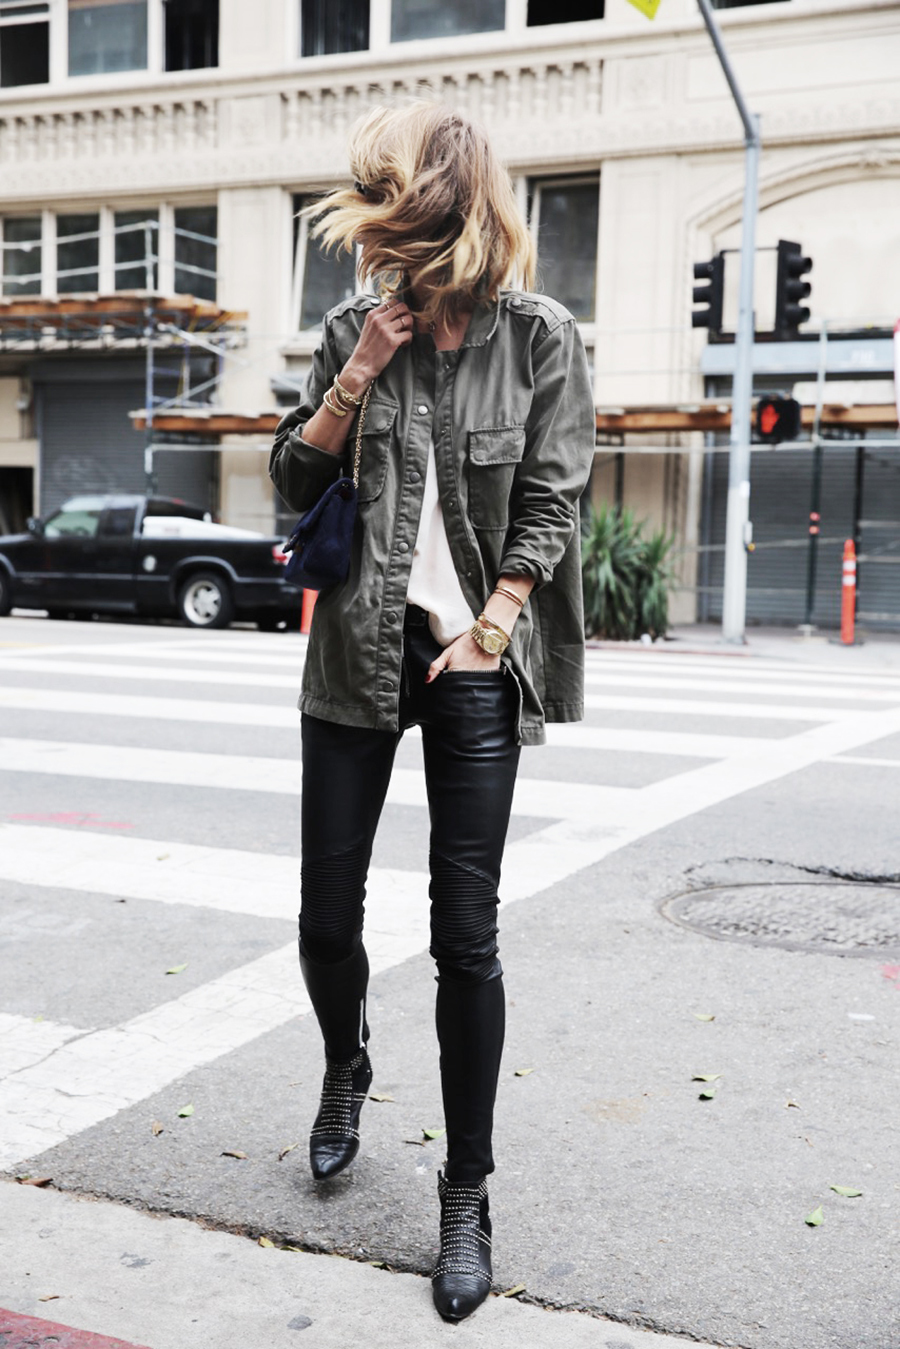 Anine Bing exudes tomboy vibes in a khaki jacket and studded boots. Outfit: Anine Bing (Brand).